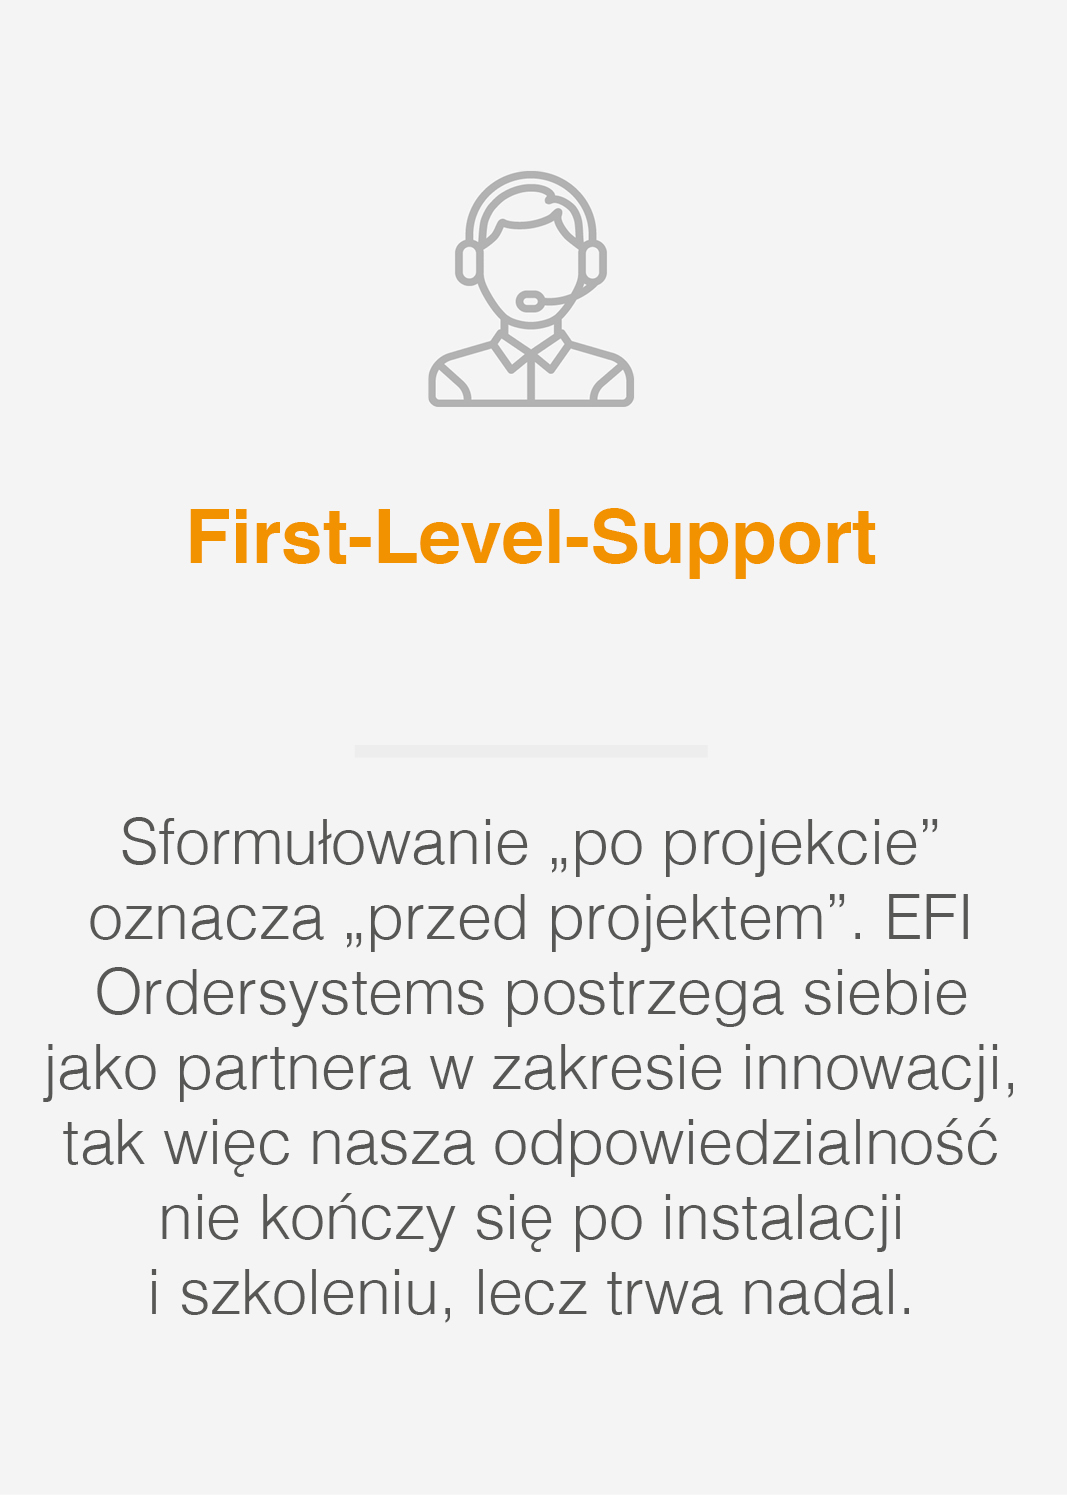 first-level-support-pl.jpg